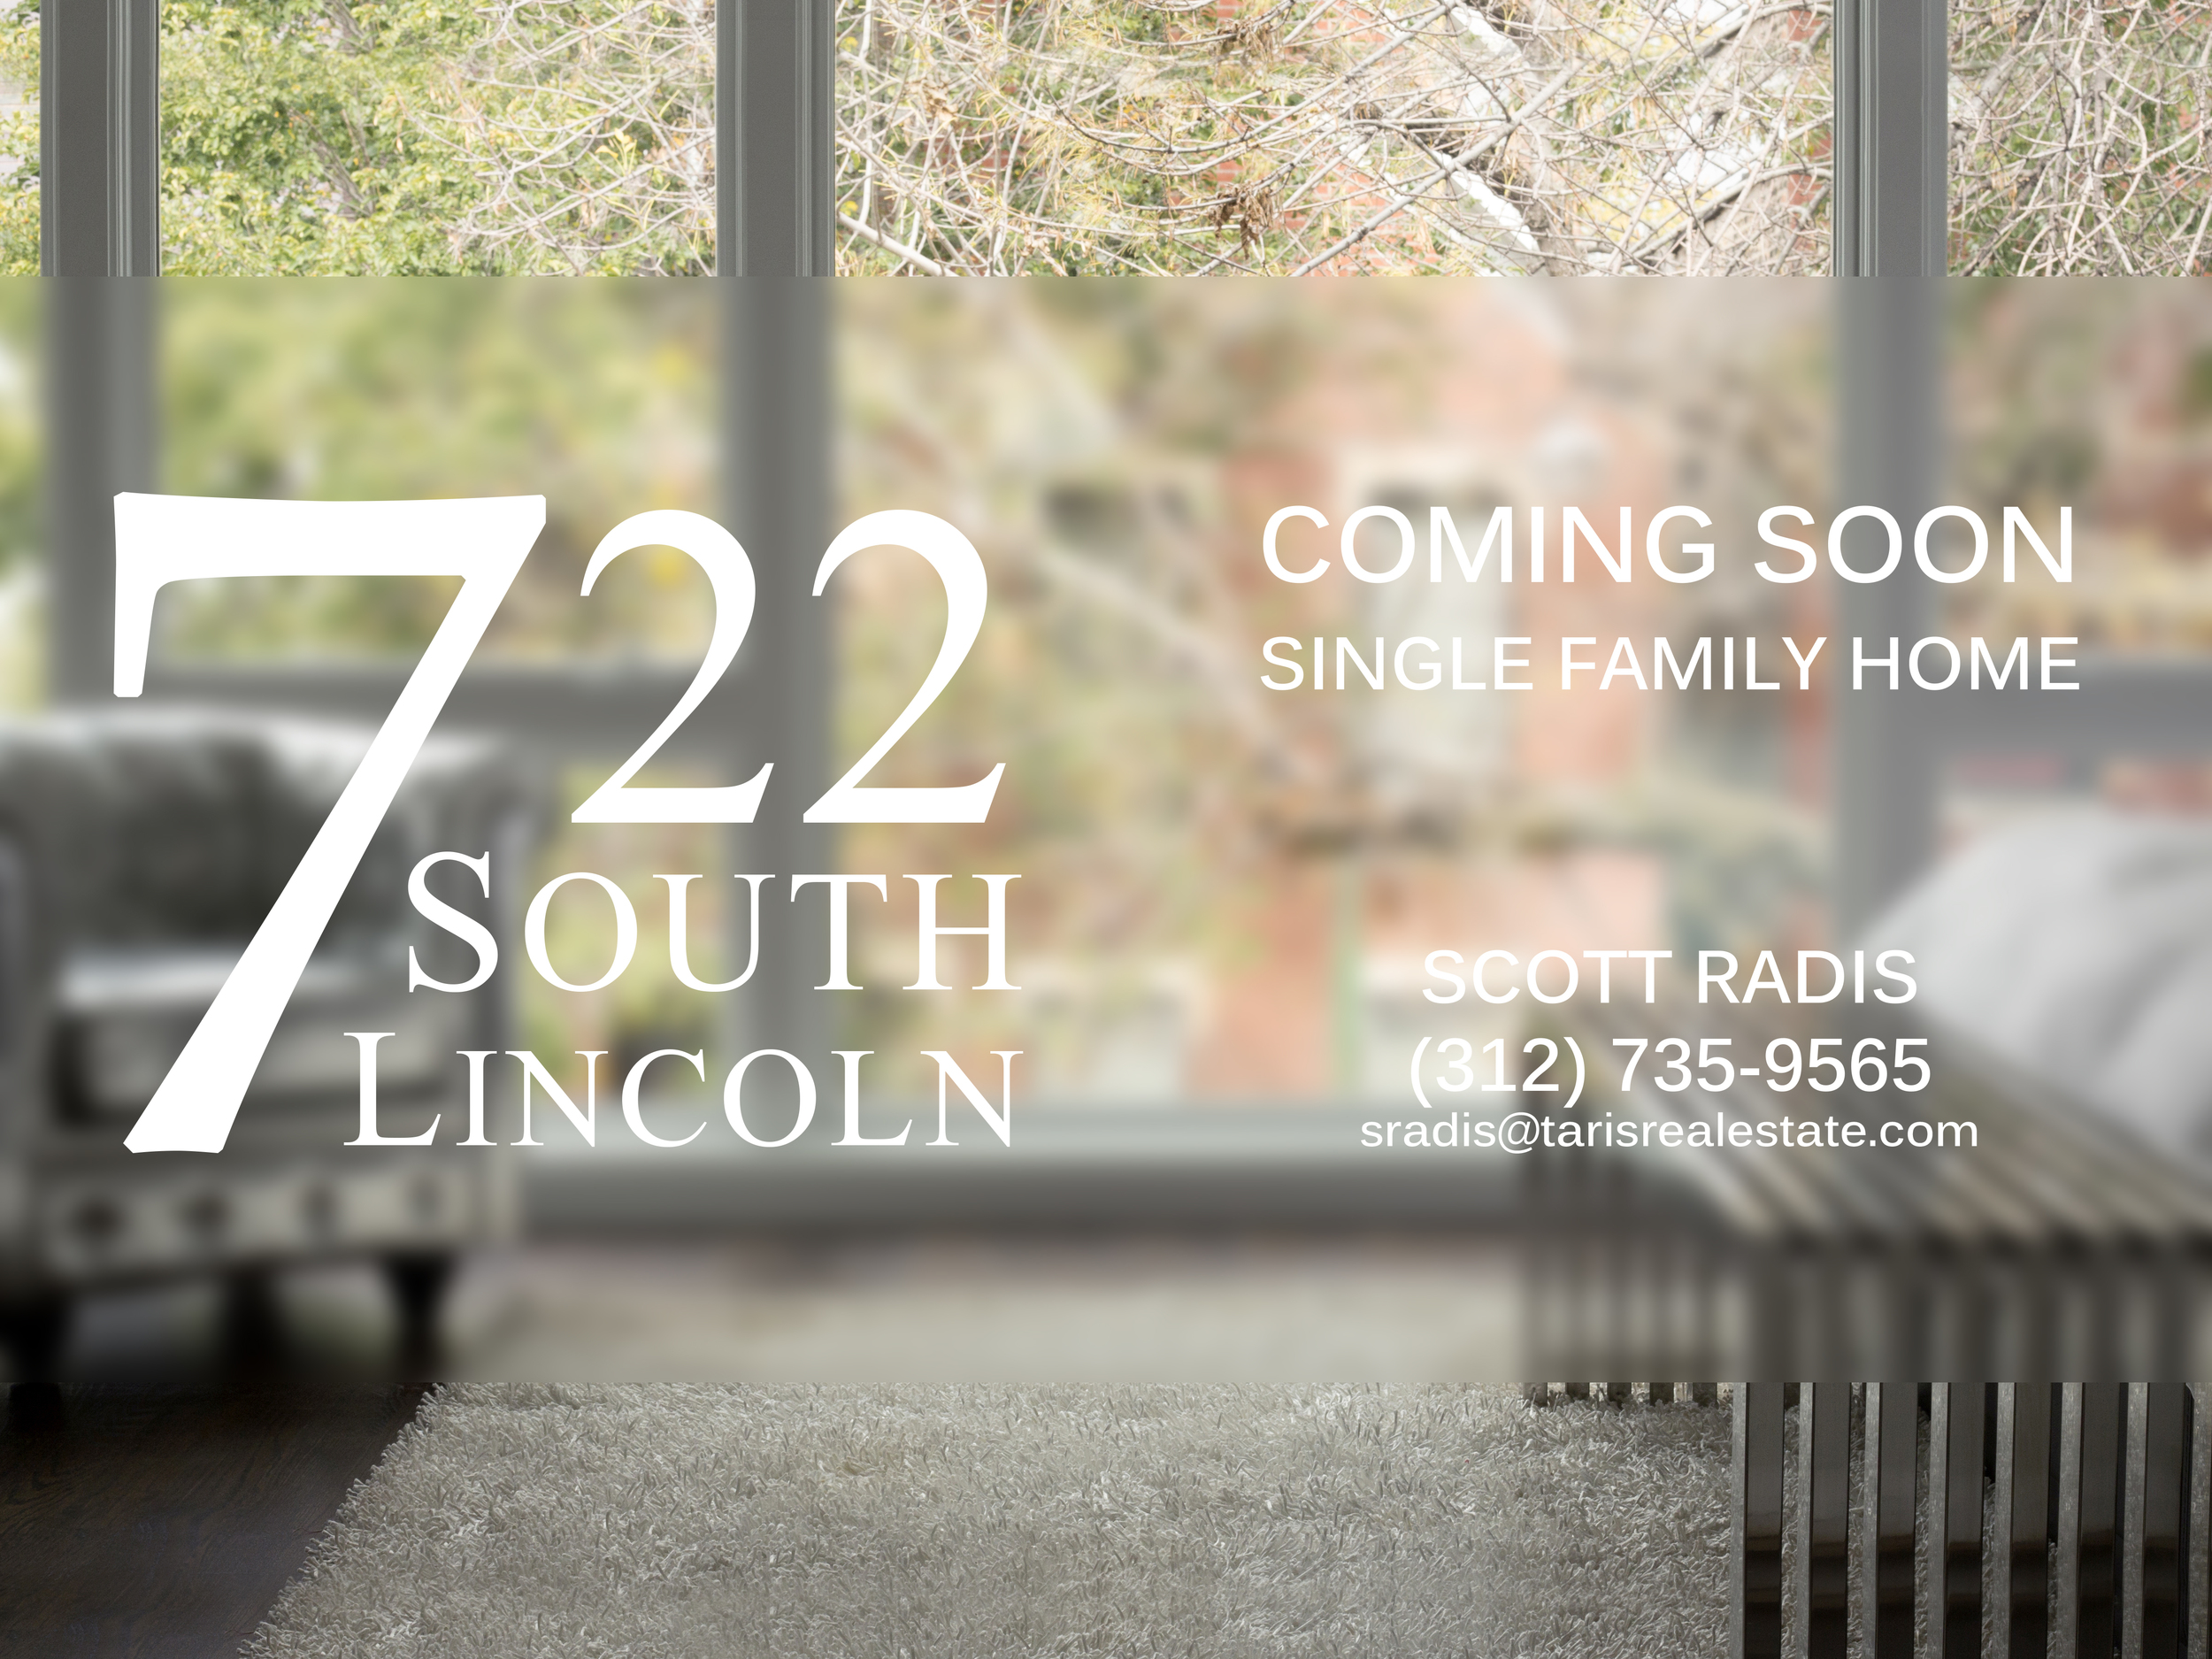 722 Site Coming Soon!